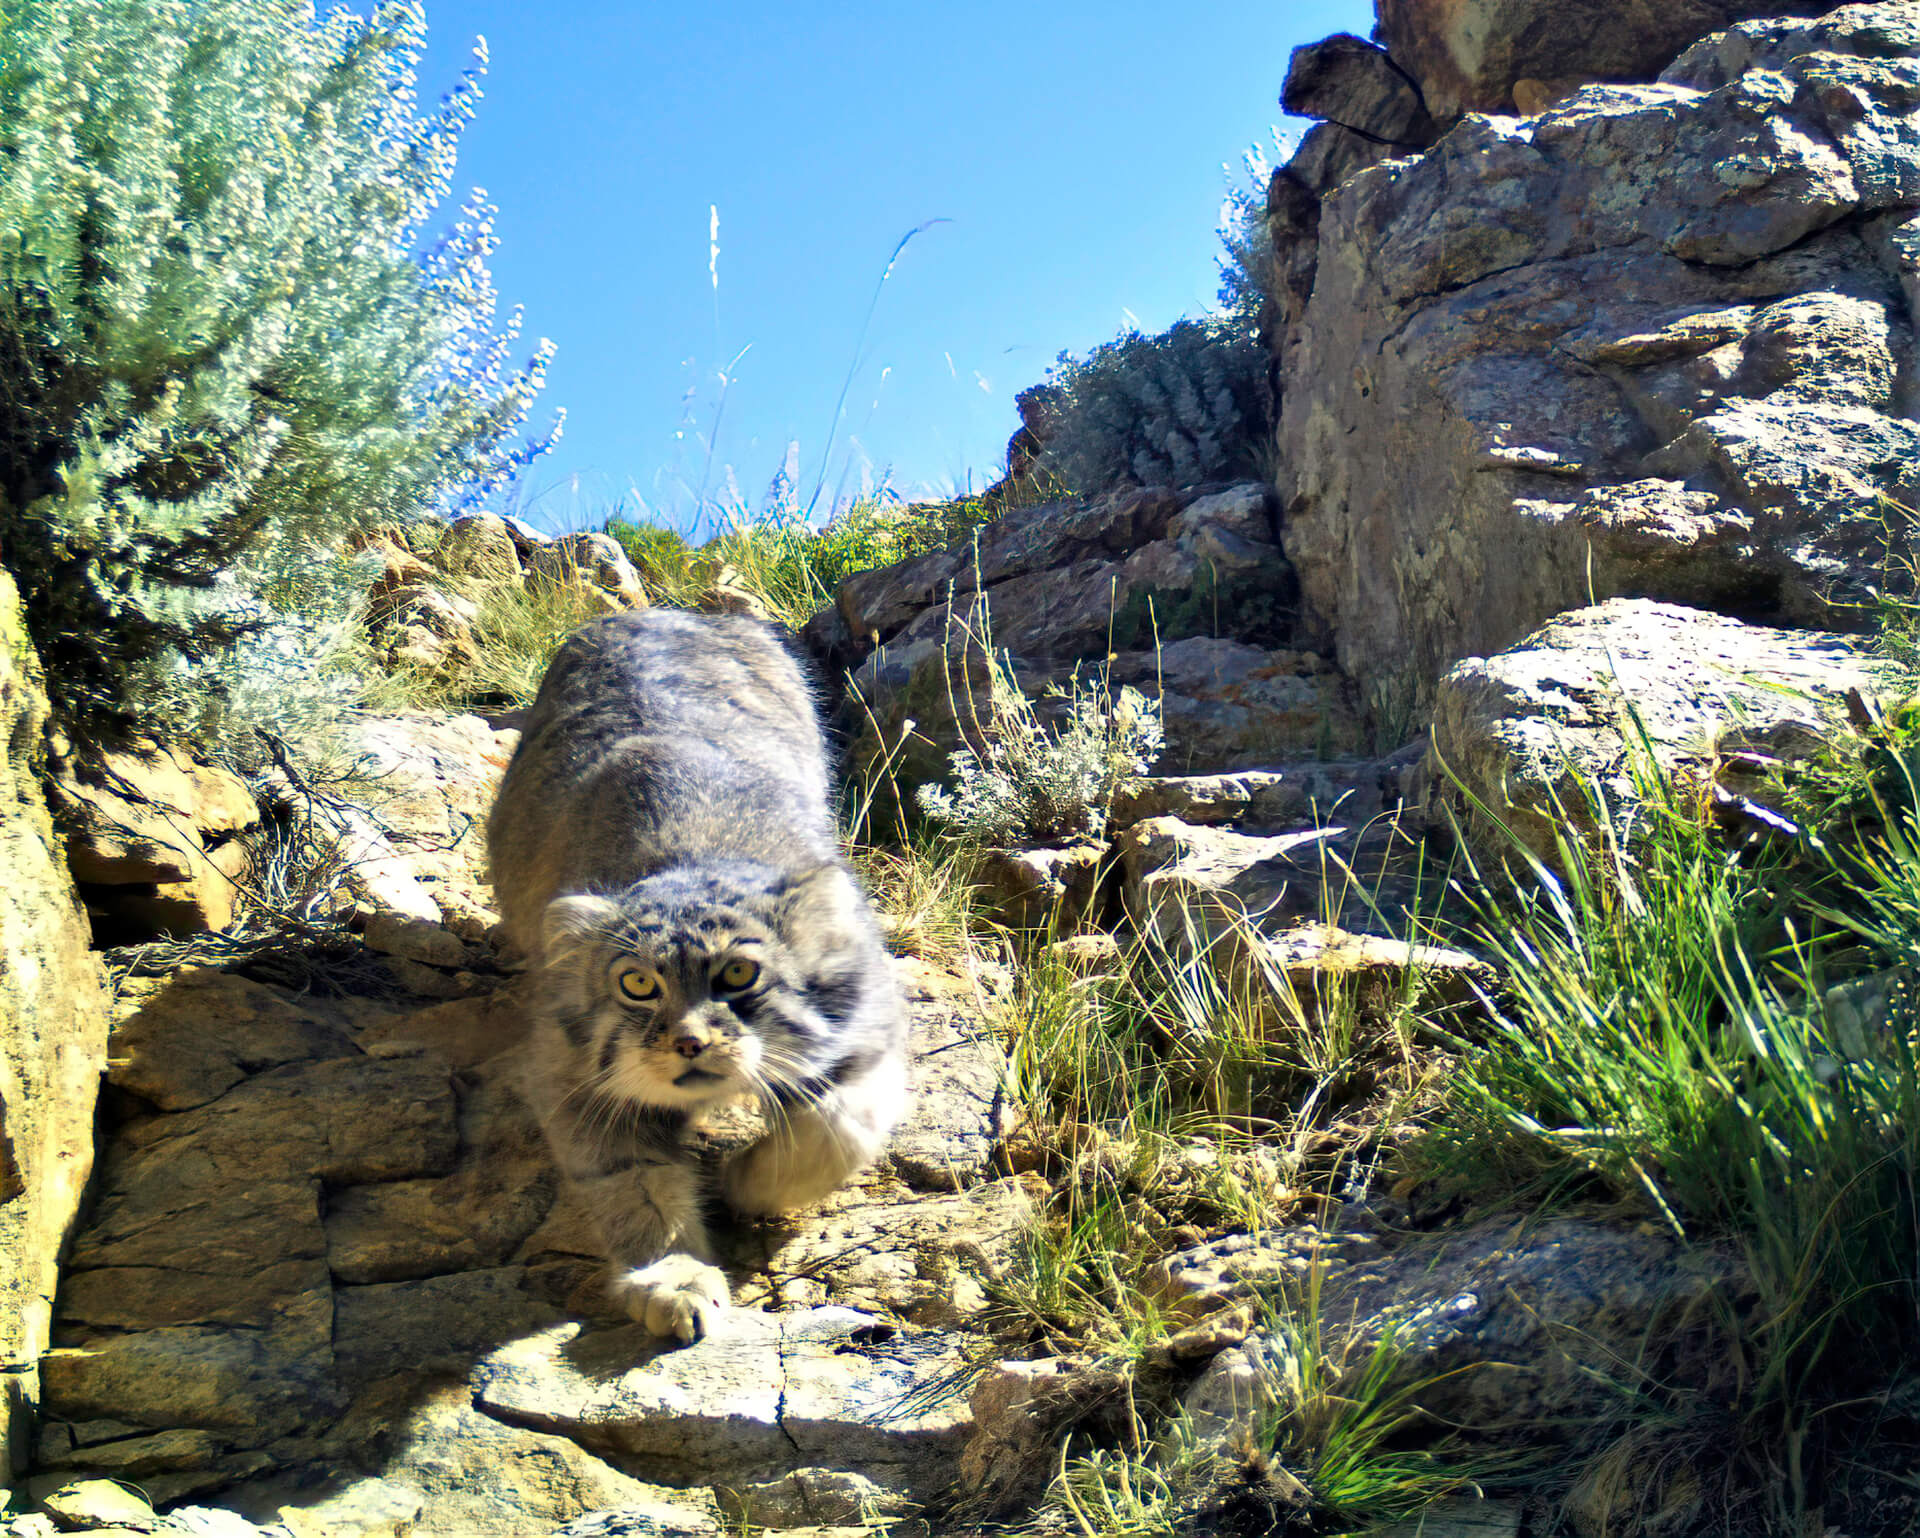 The Pallas's cat, a threatened species: a team of Italian researchers working to save it